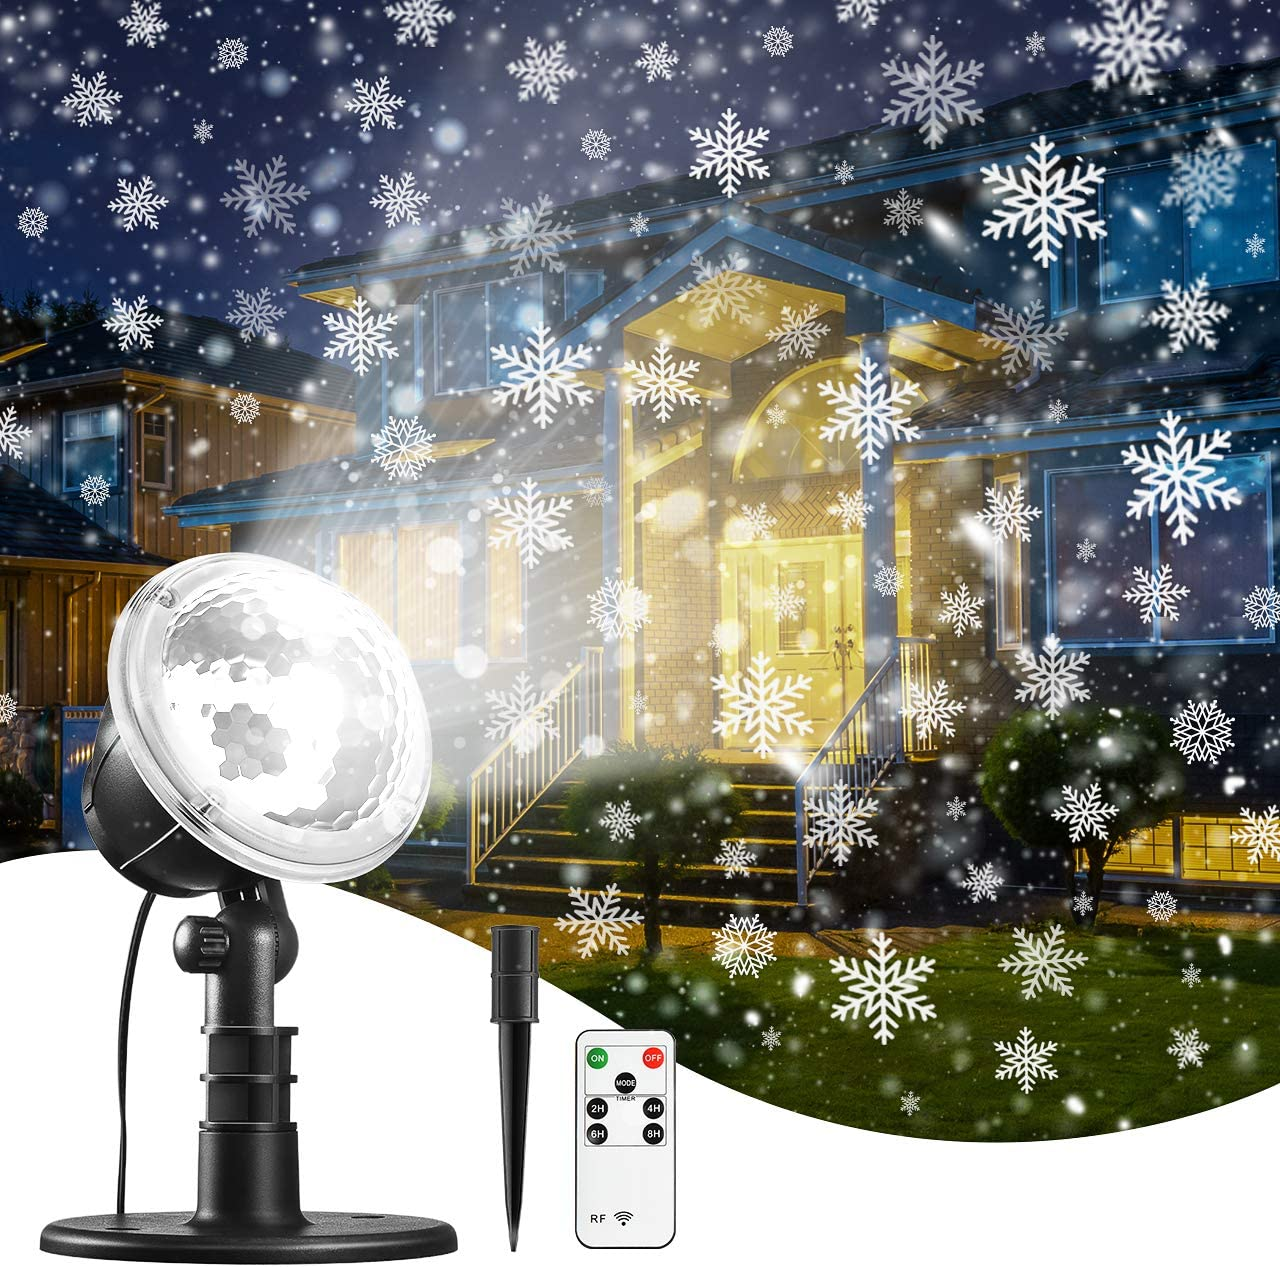 Christmas Laser Projector Light LED 12 Pattern Garden House Snow Party Outdoor